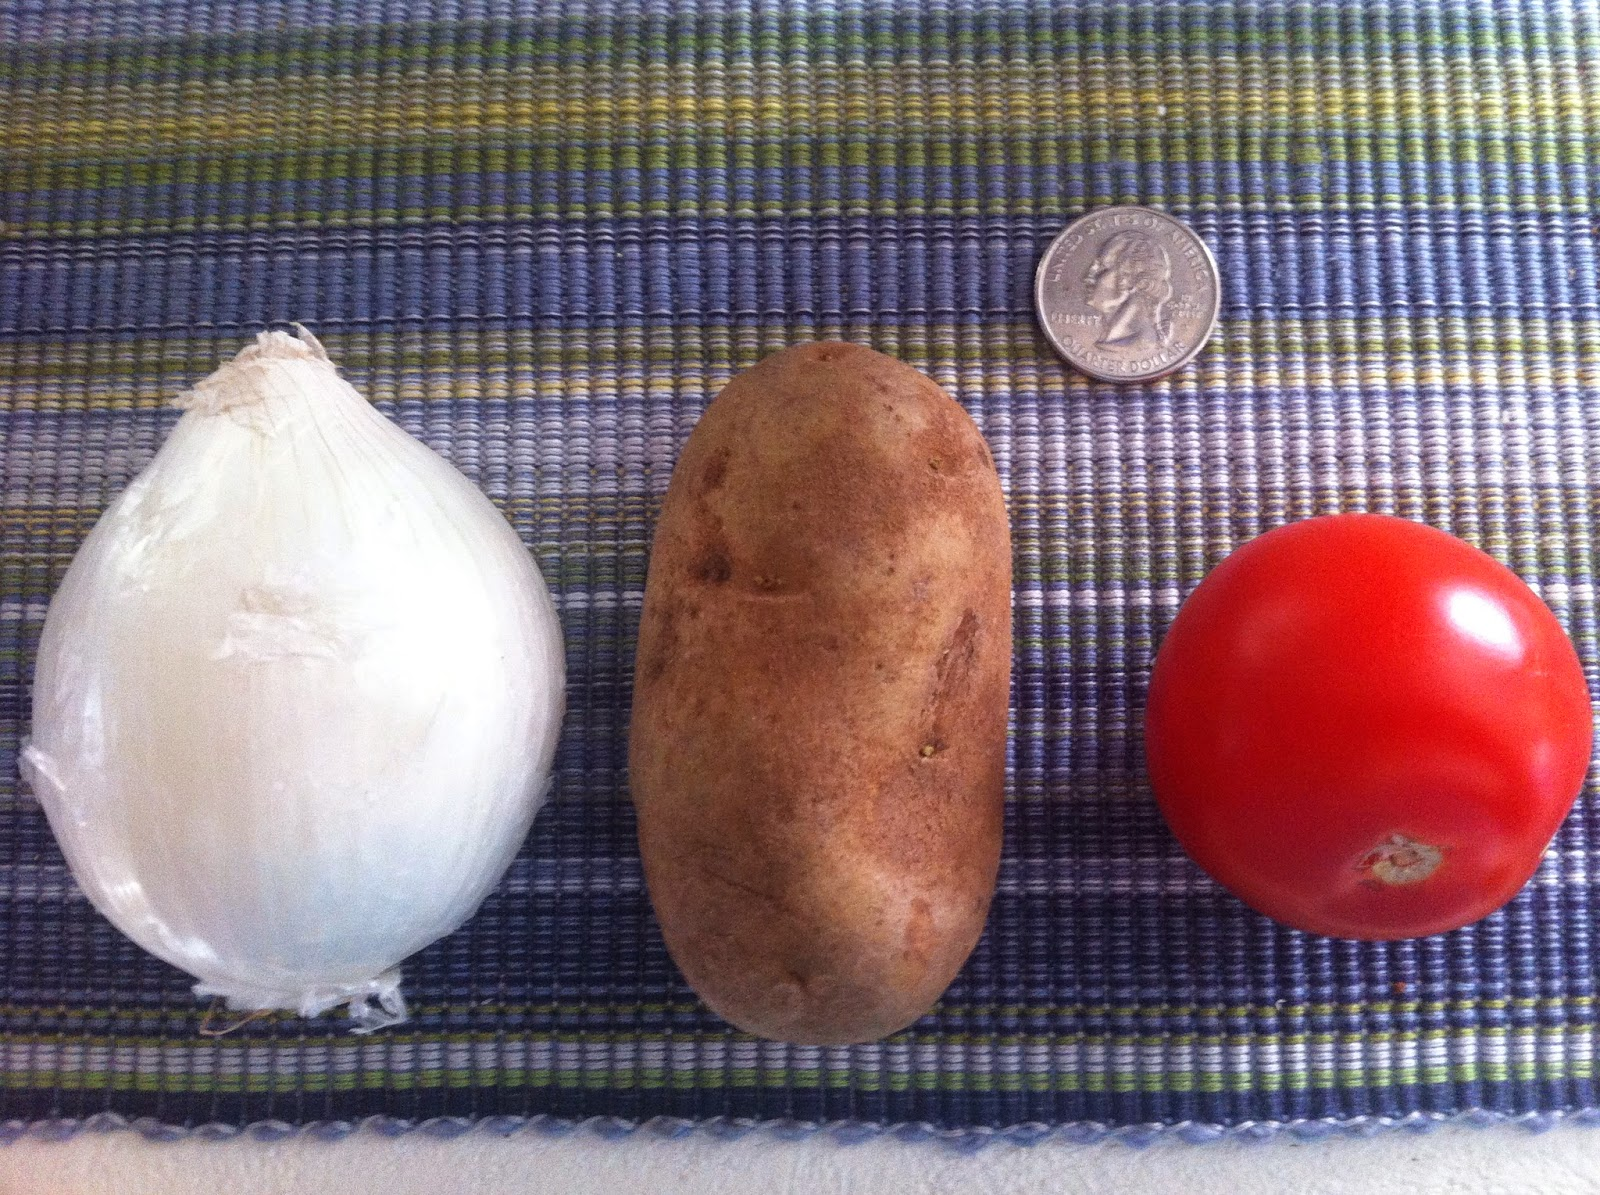 Small onion, potato, and tomato next to a quarter for scale